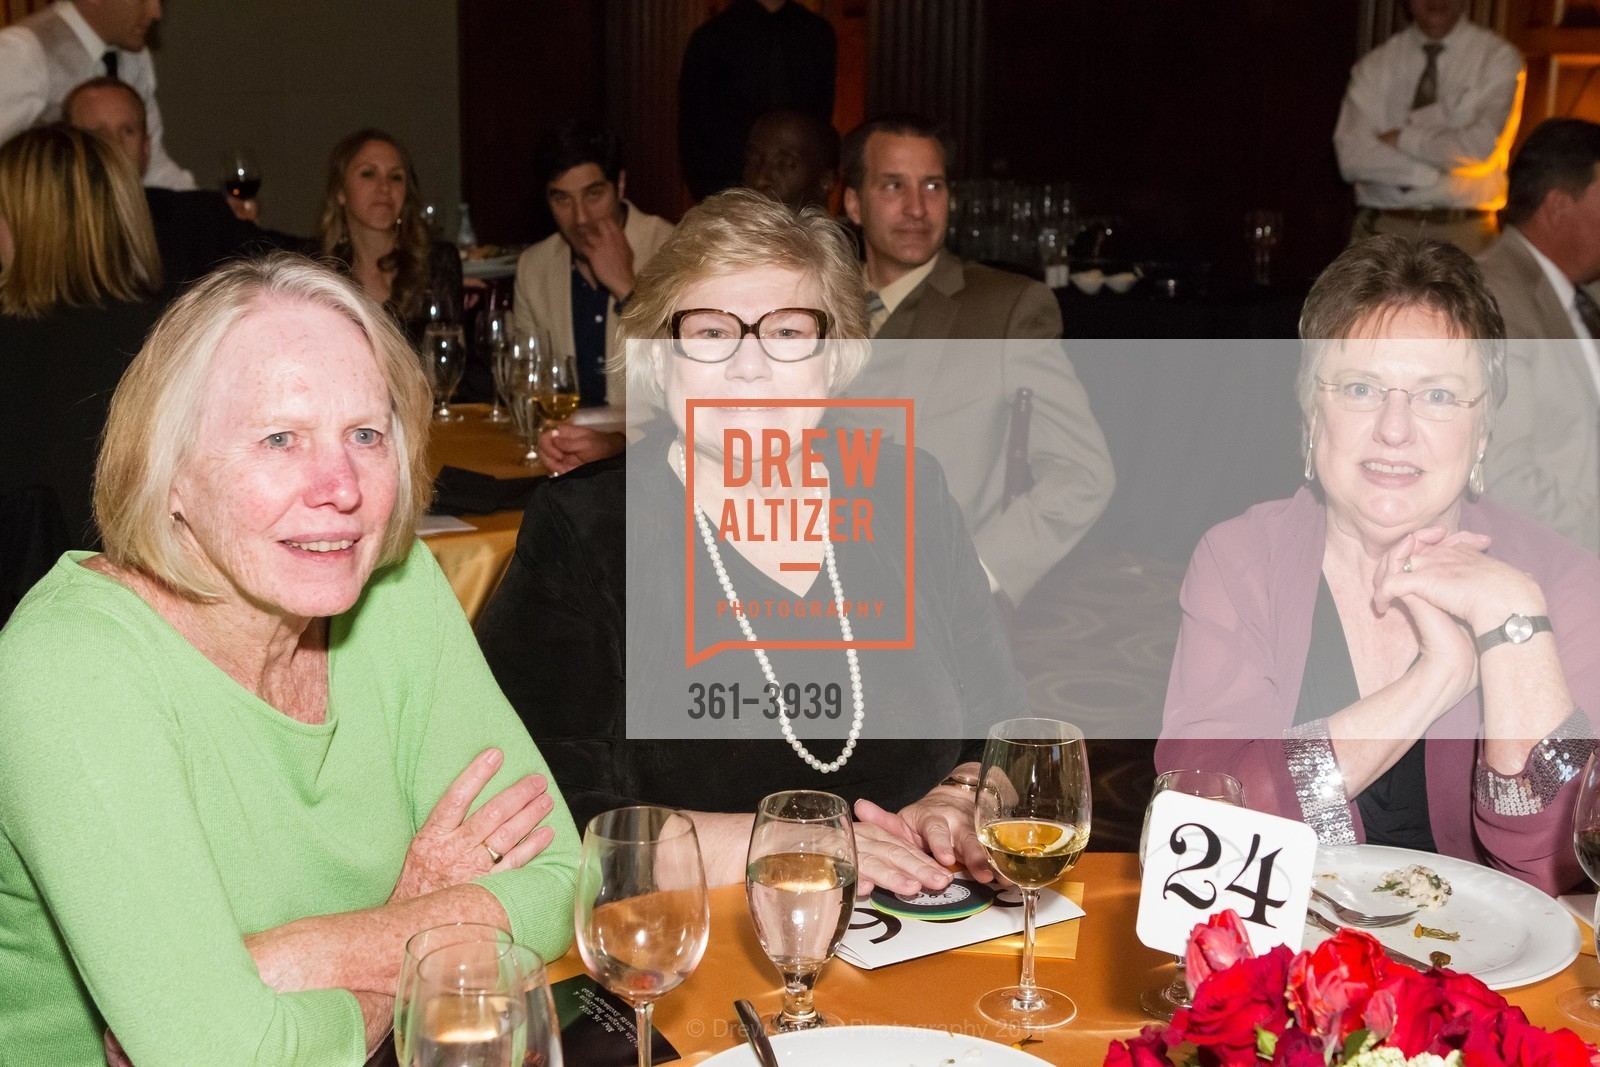 Judy Holm, Marilyn Mathers, Susan Fox, Photo #361-3939